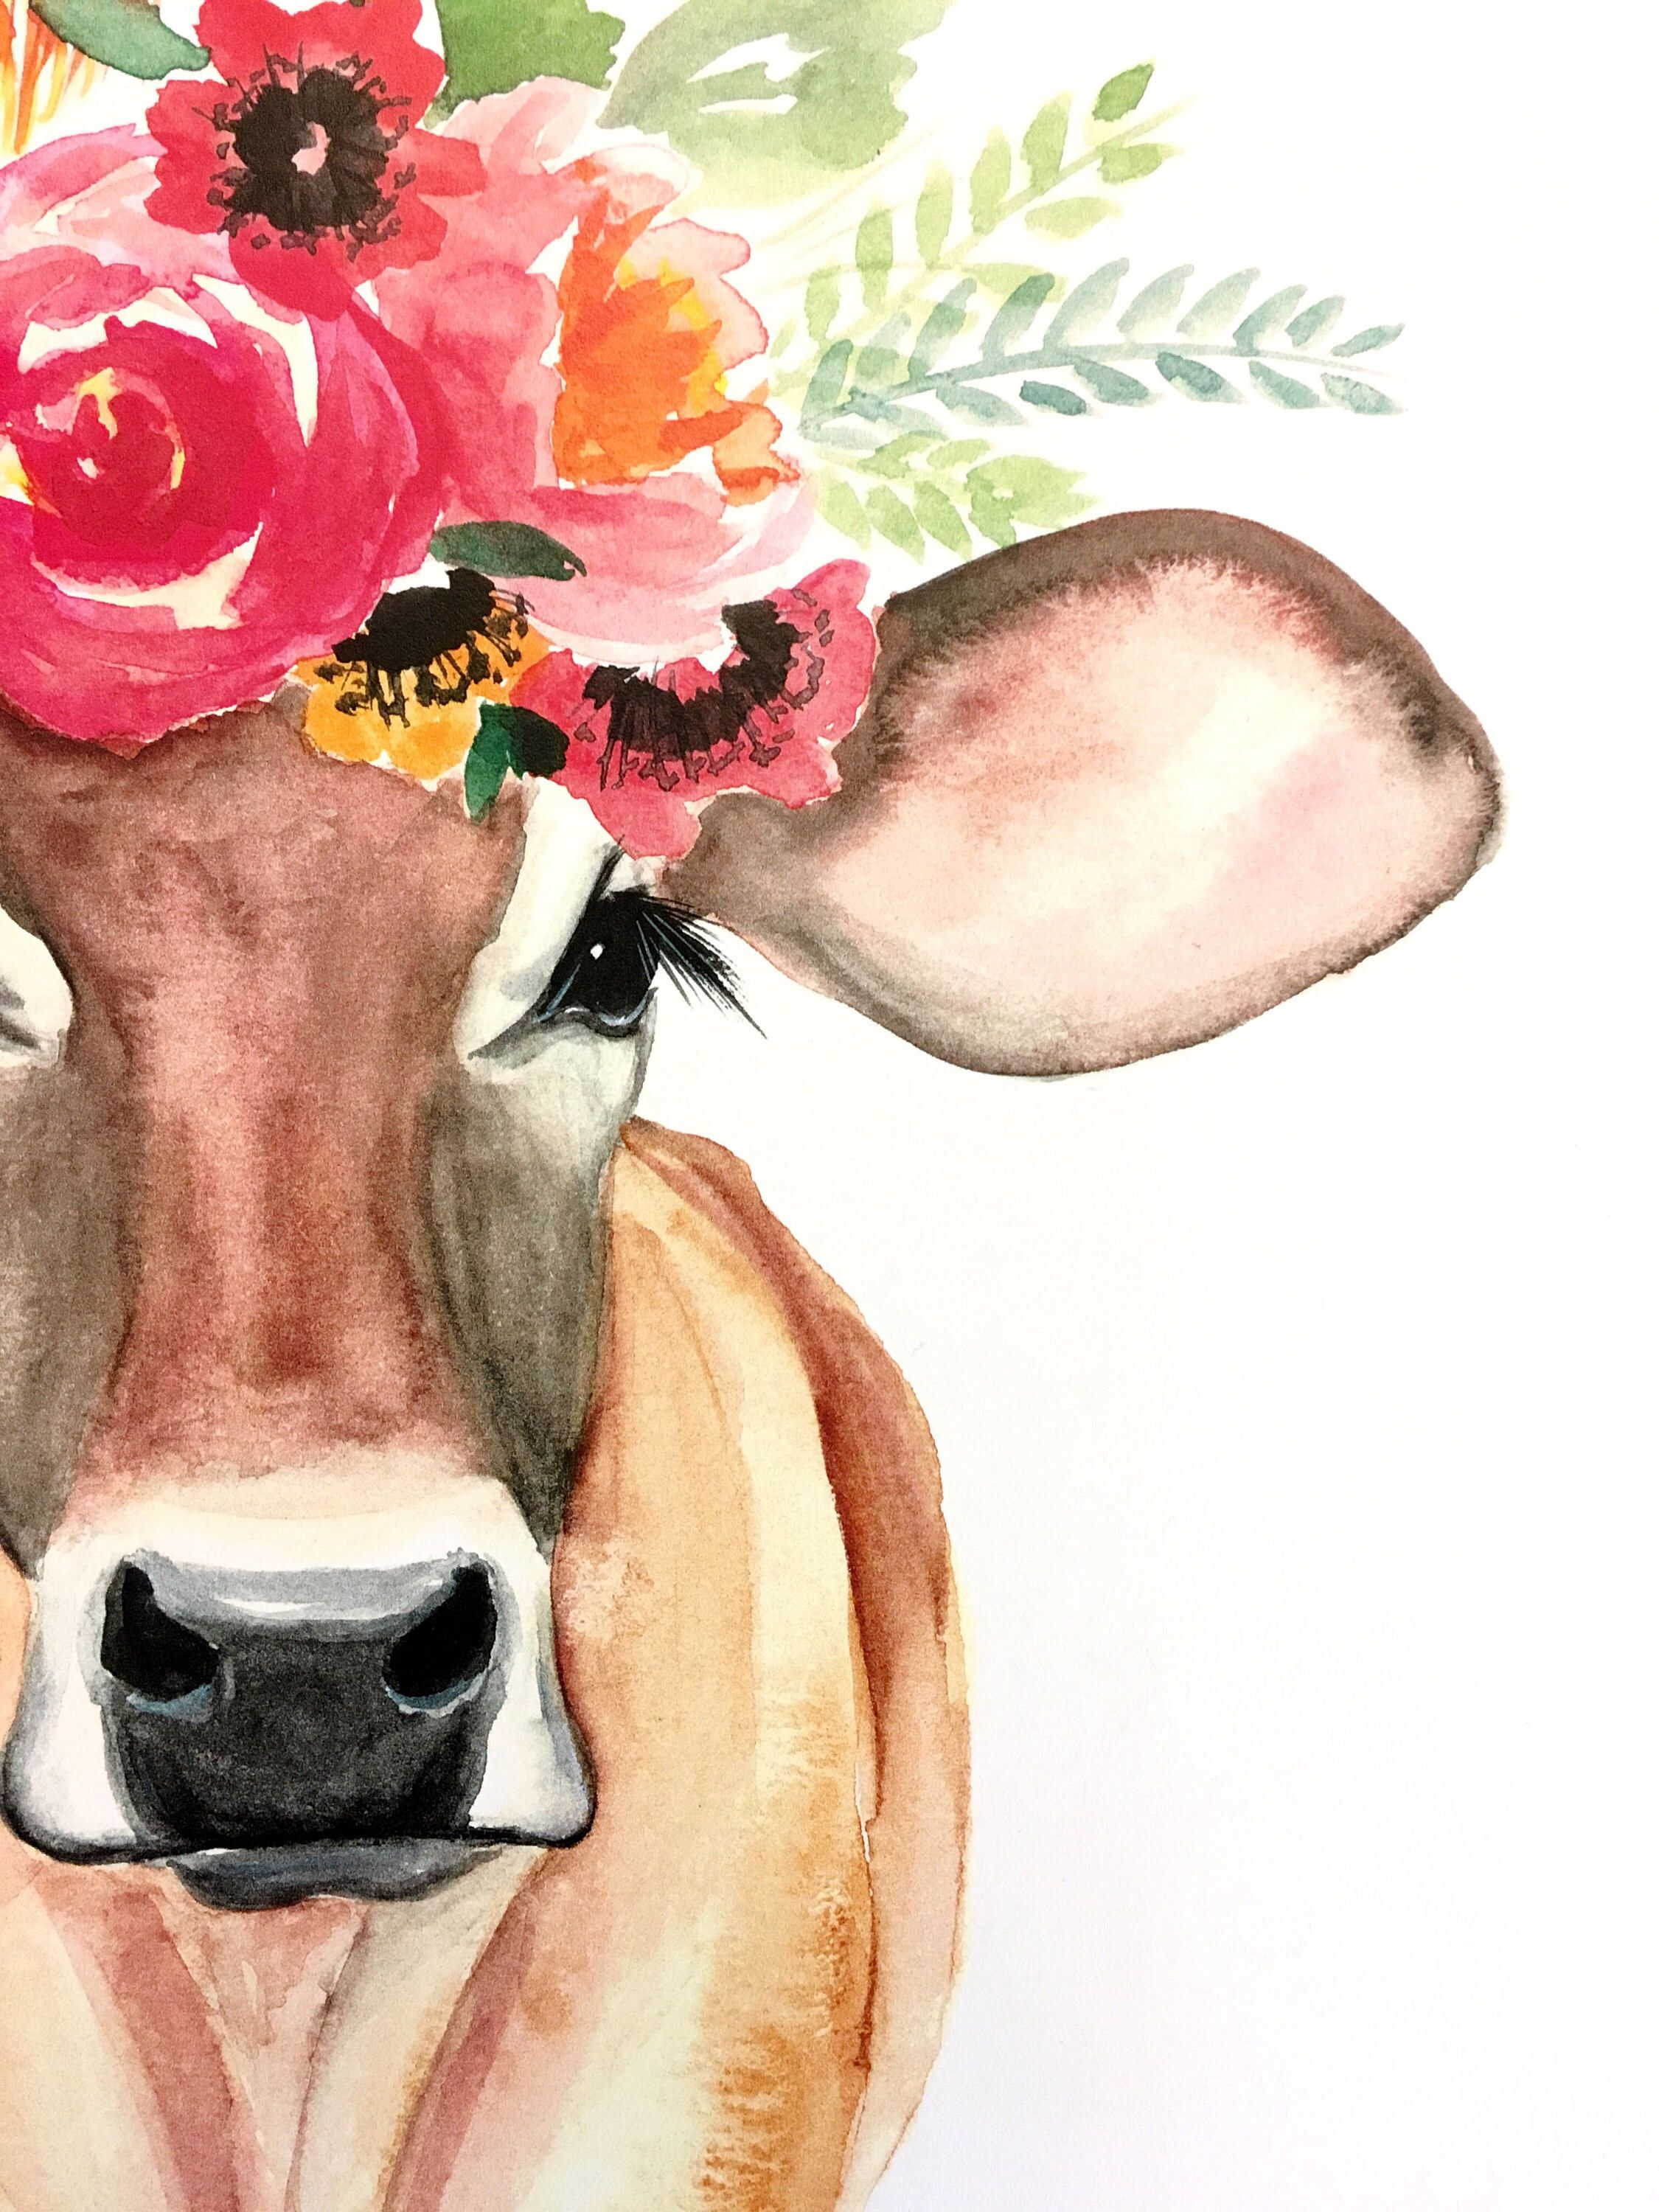 Miranda The Cow Print Floral Cow Floral Crown Cow Where The Wild